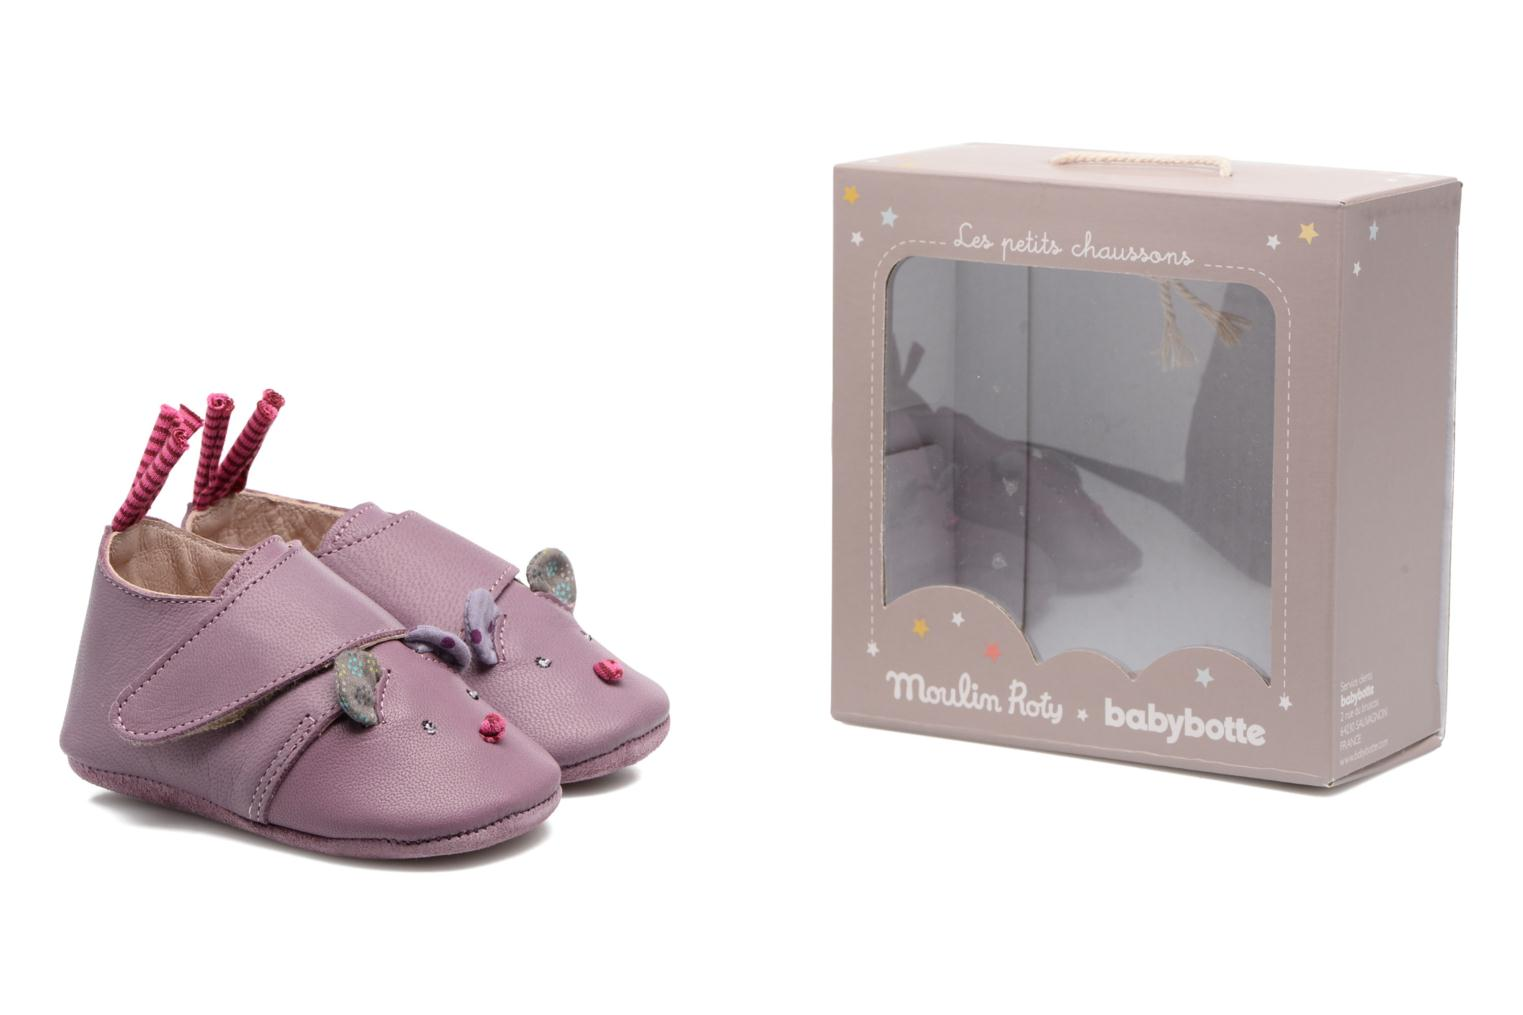 Chaussons Babybotte Souris - Moulin Roty Violet vue 3/4